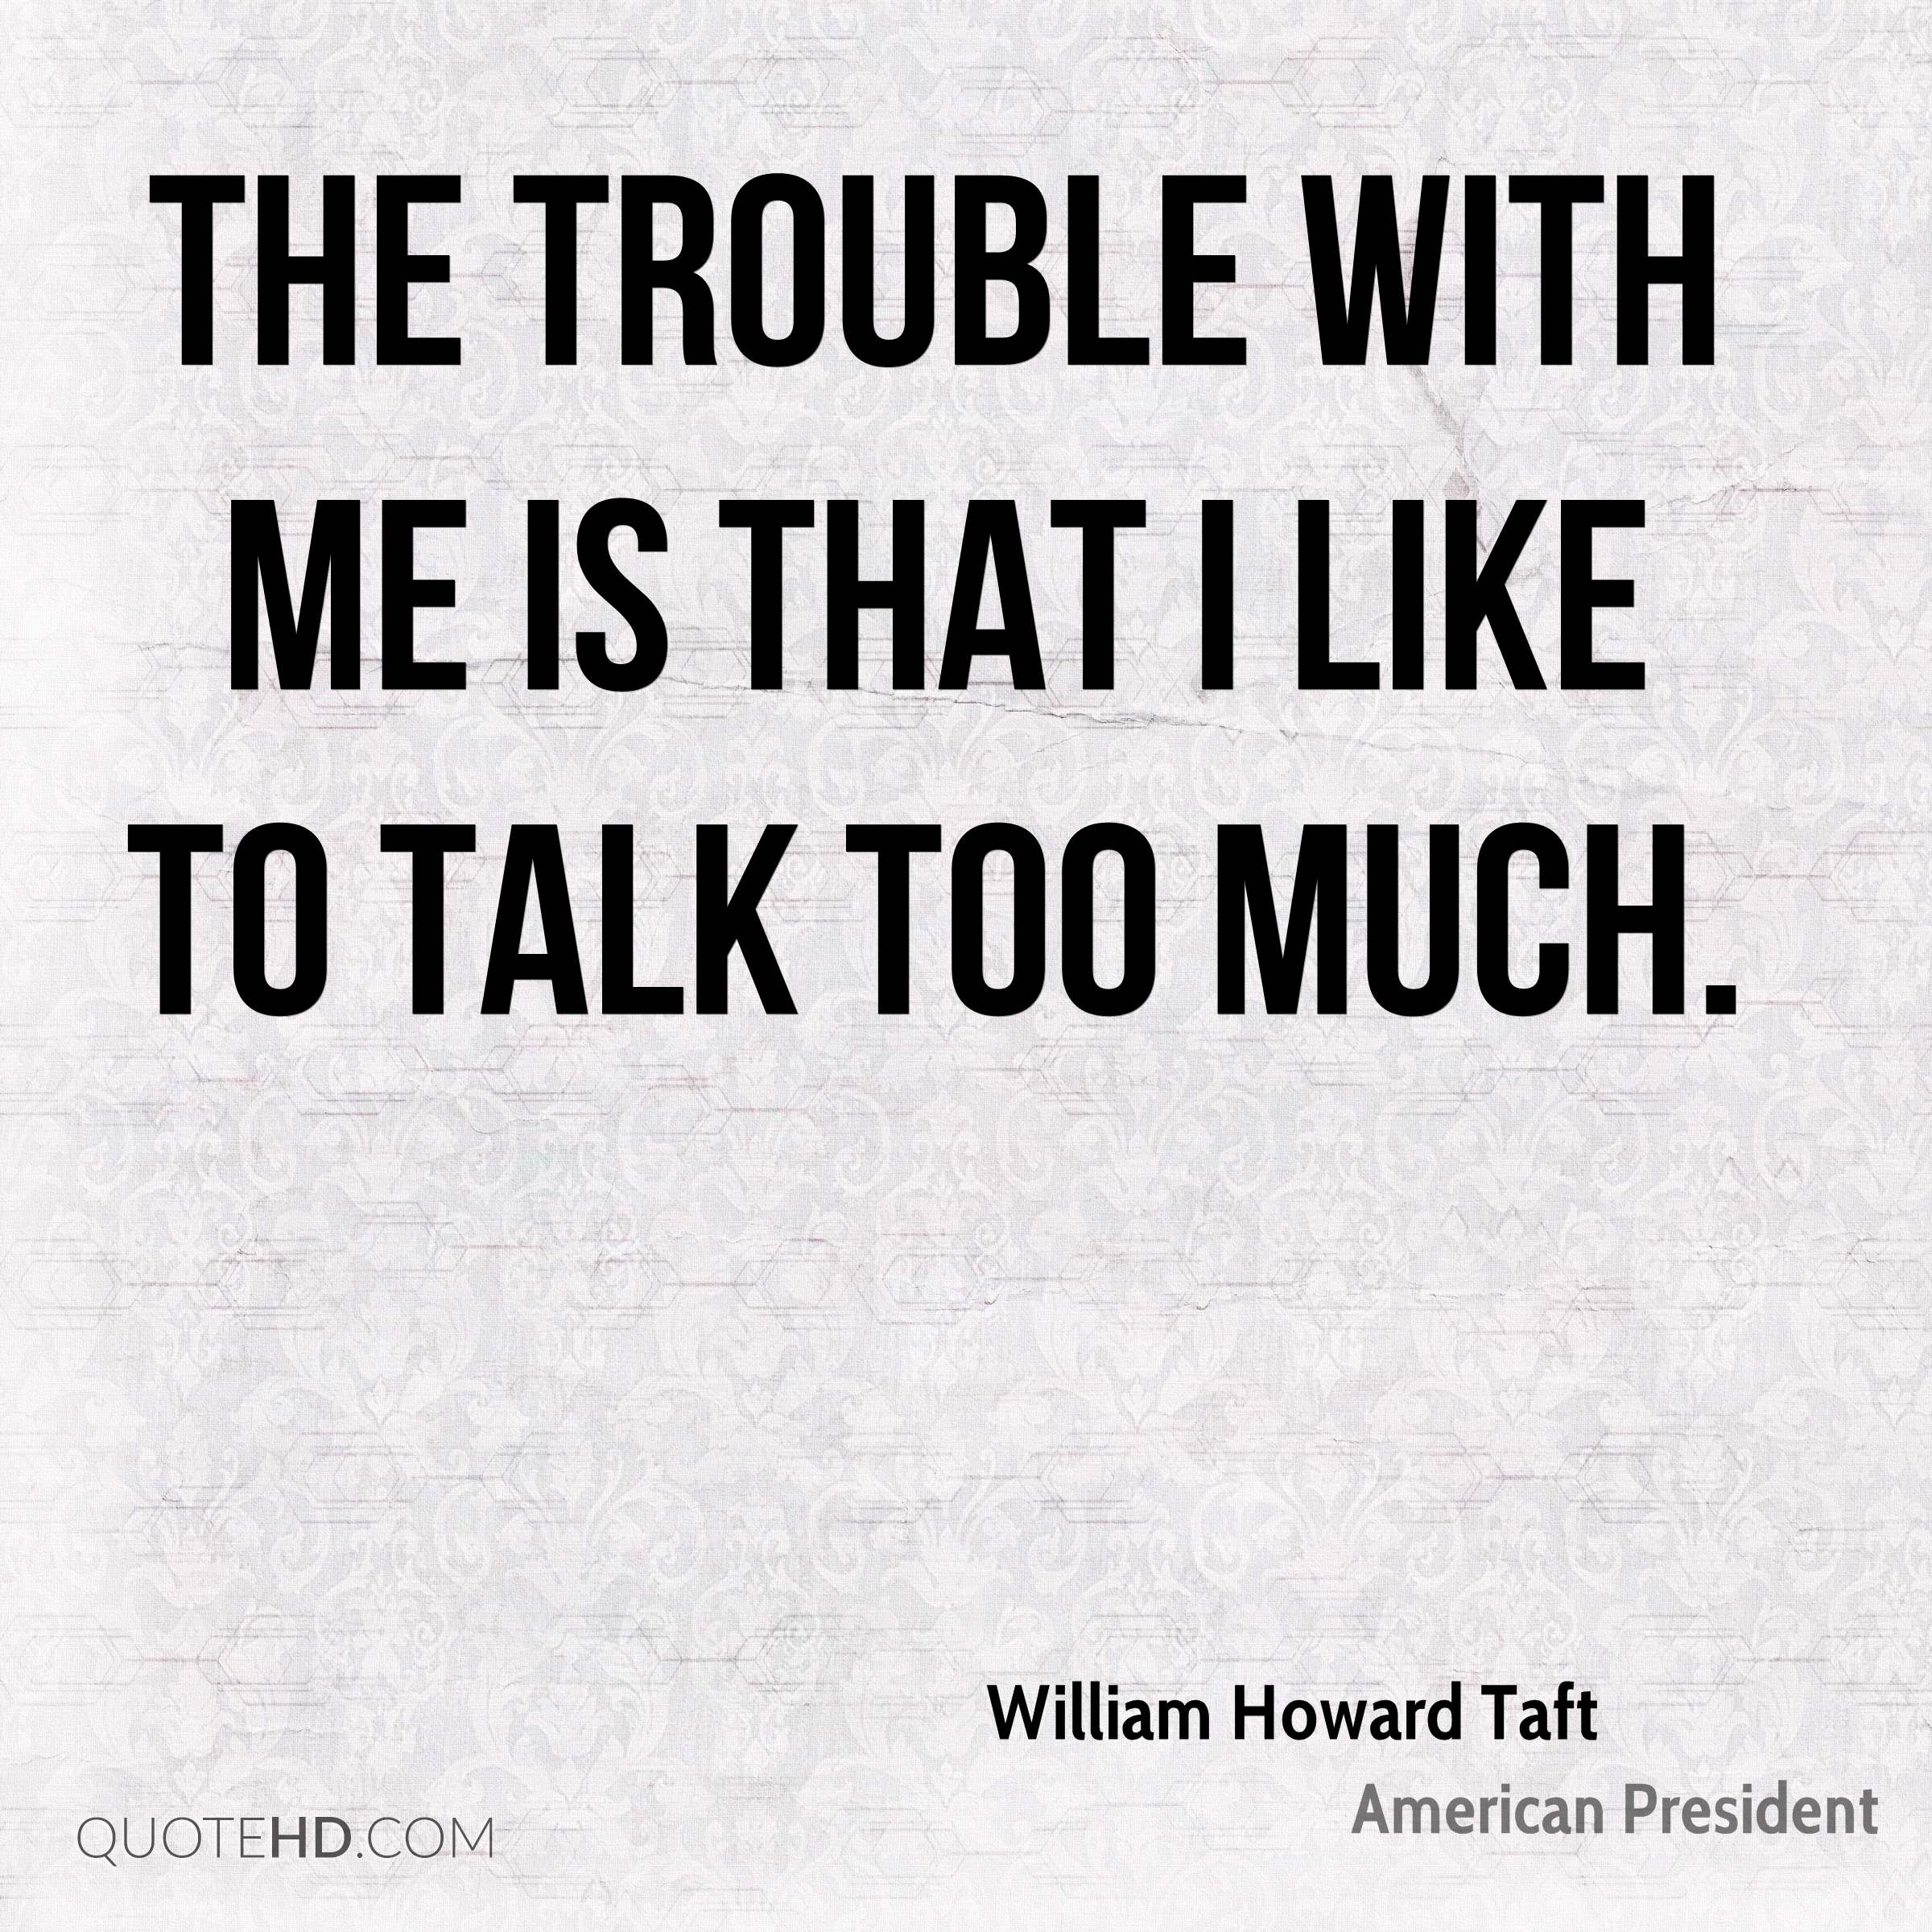 The trouble with me is that I like to talk too much.